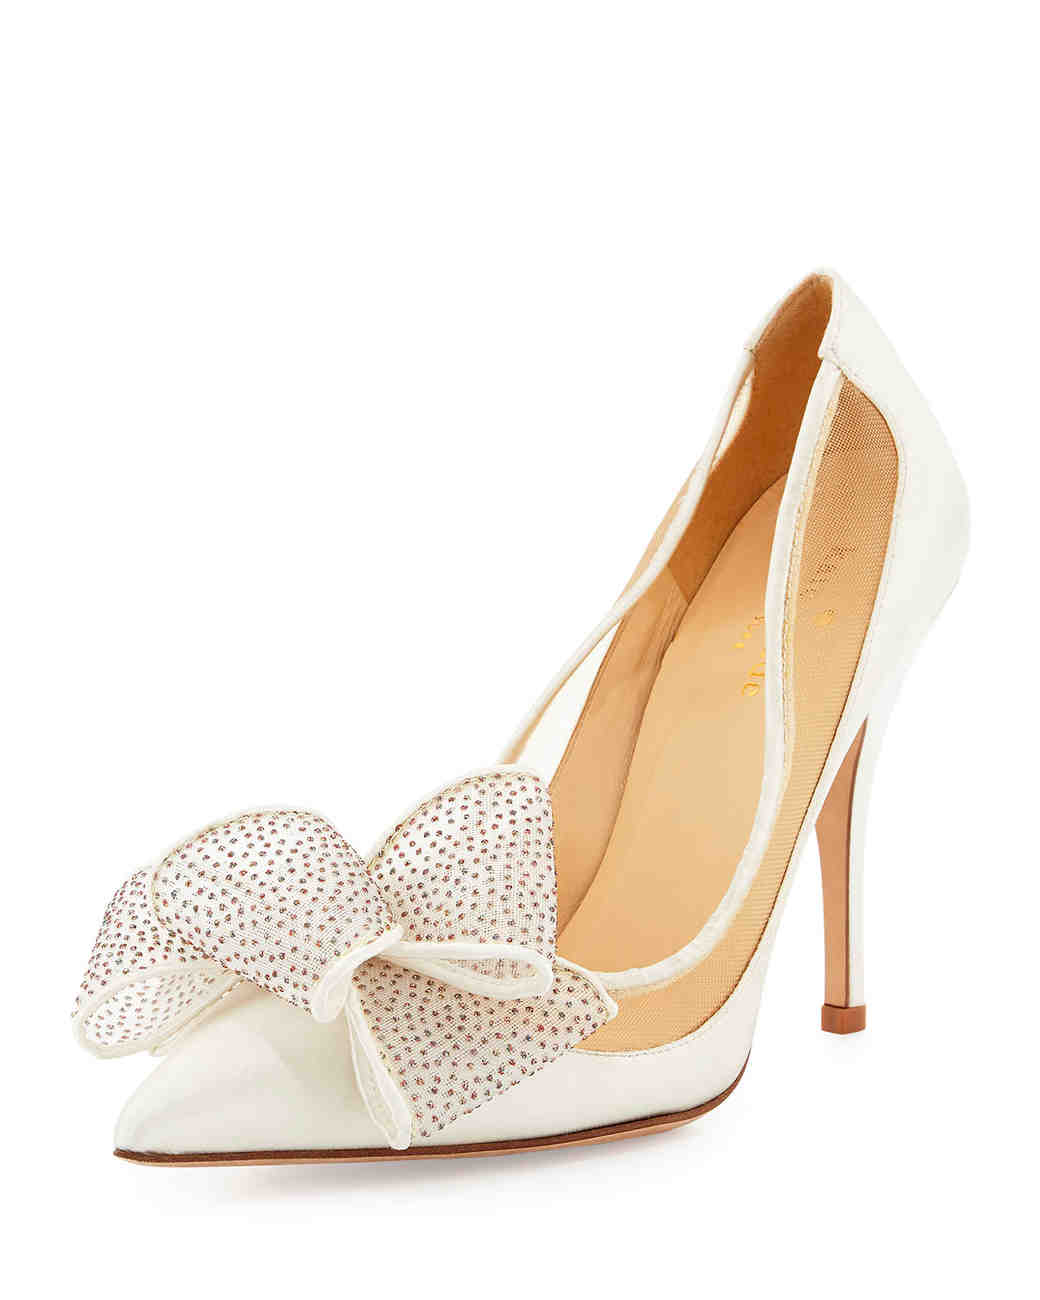 mesh-wedding-shoes-kate-spade-pump-0315.jpg